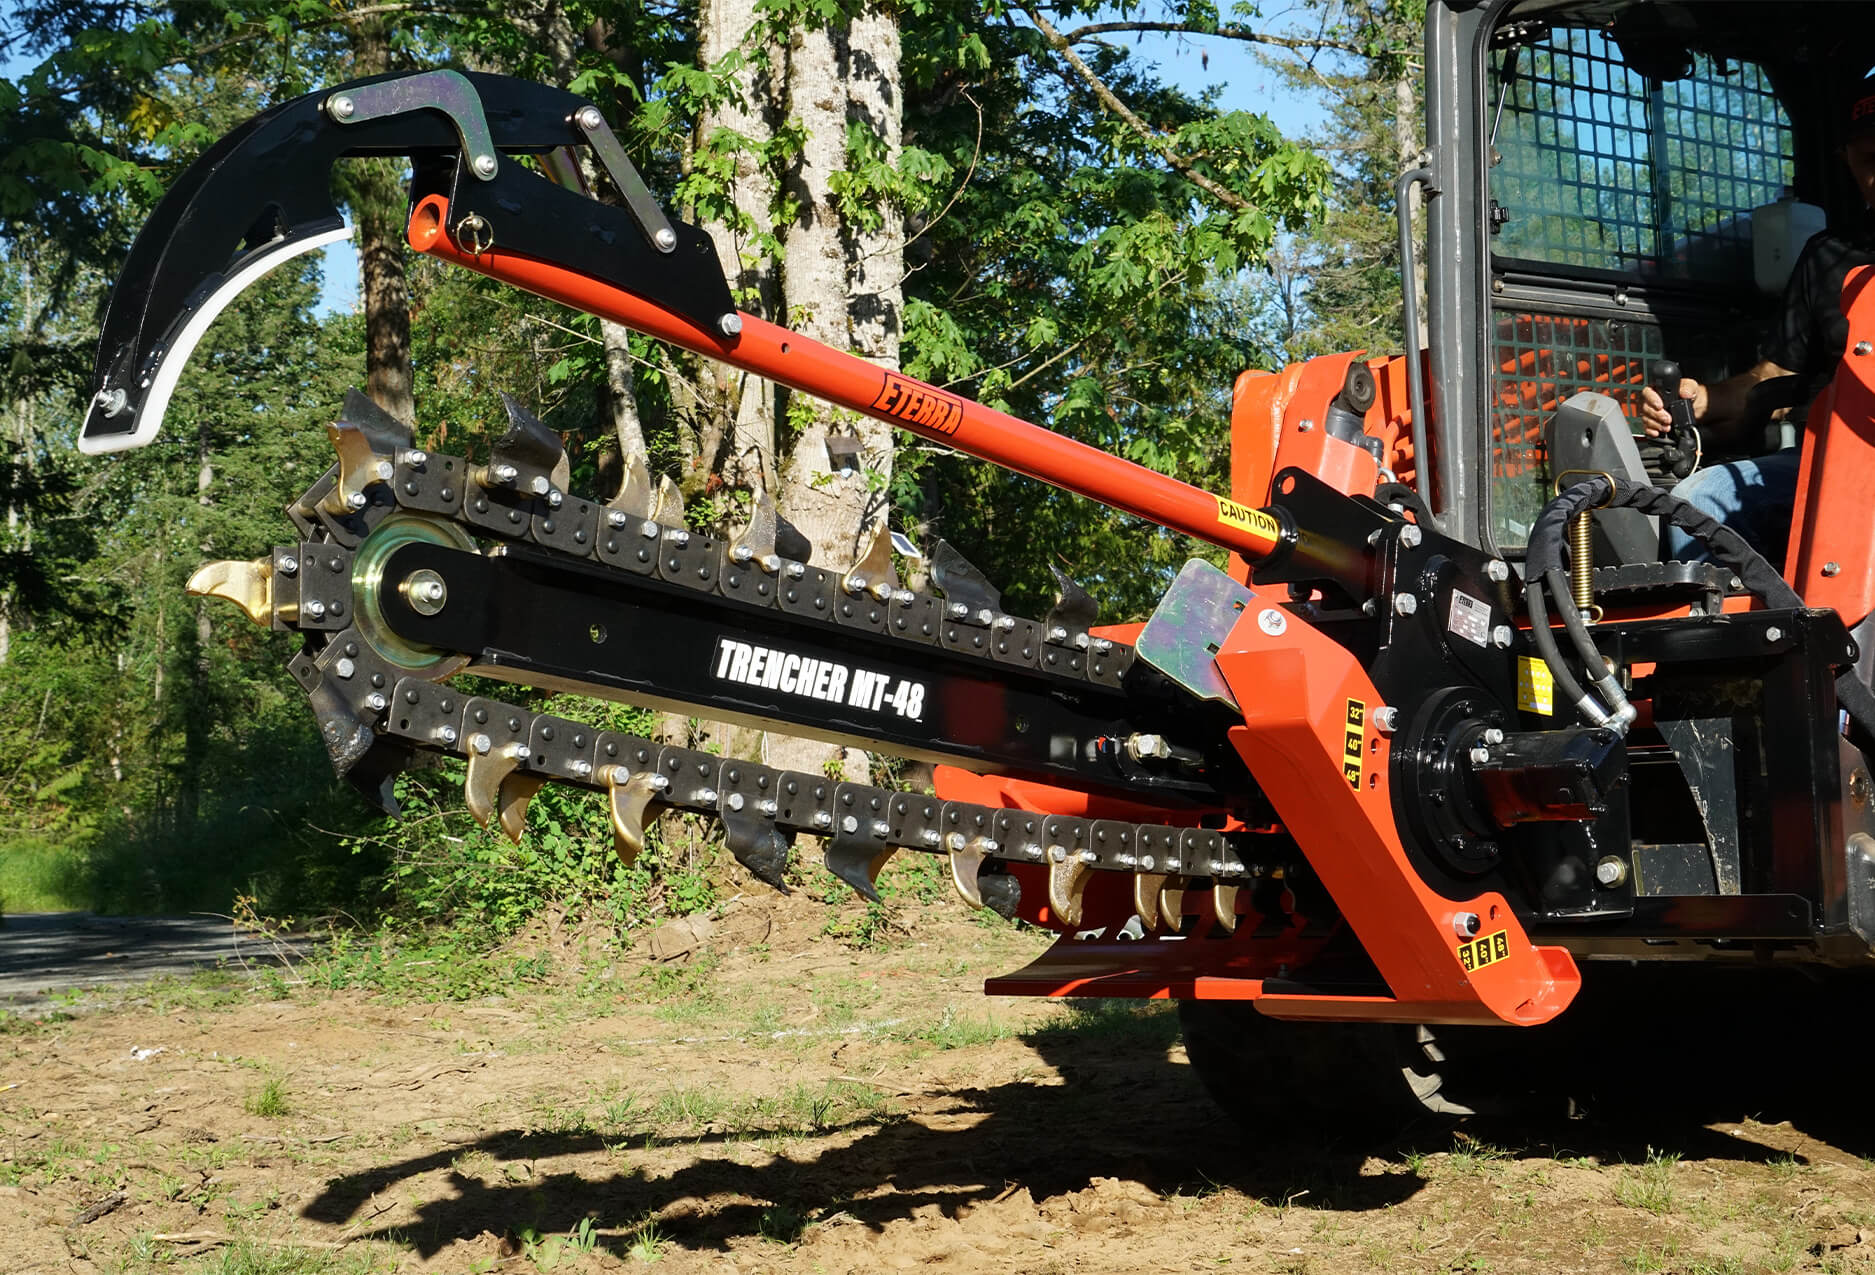 skid steer trencher attachment on a Kubota SVL skid steer loader.